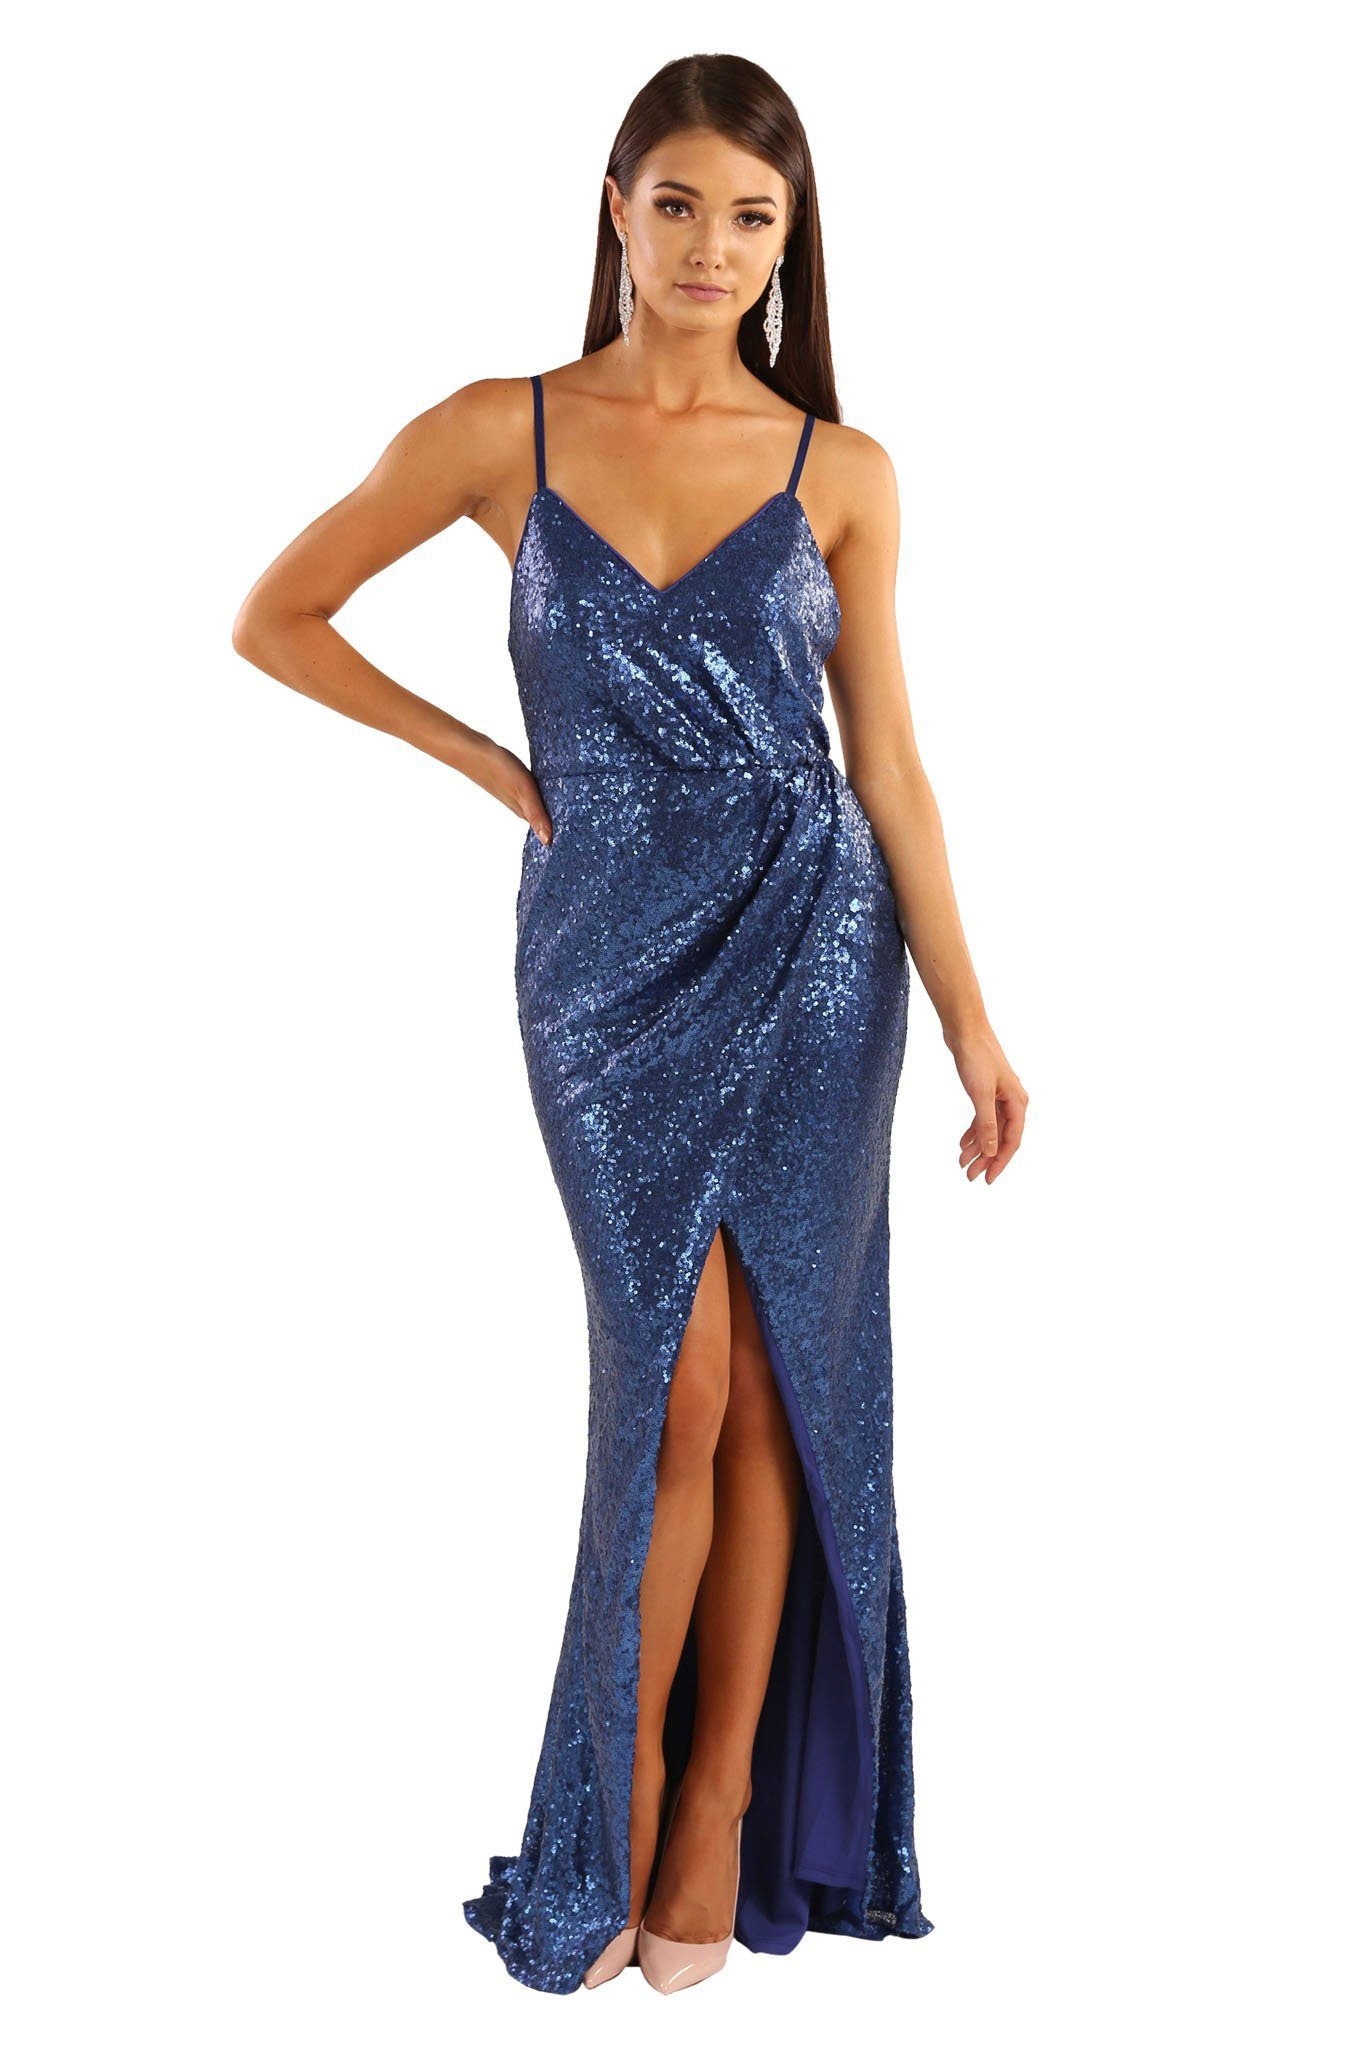 Sapphire blue colored sequin sleeveless formal long gown with adjustable shoulder straps, front slit and open back design